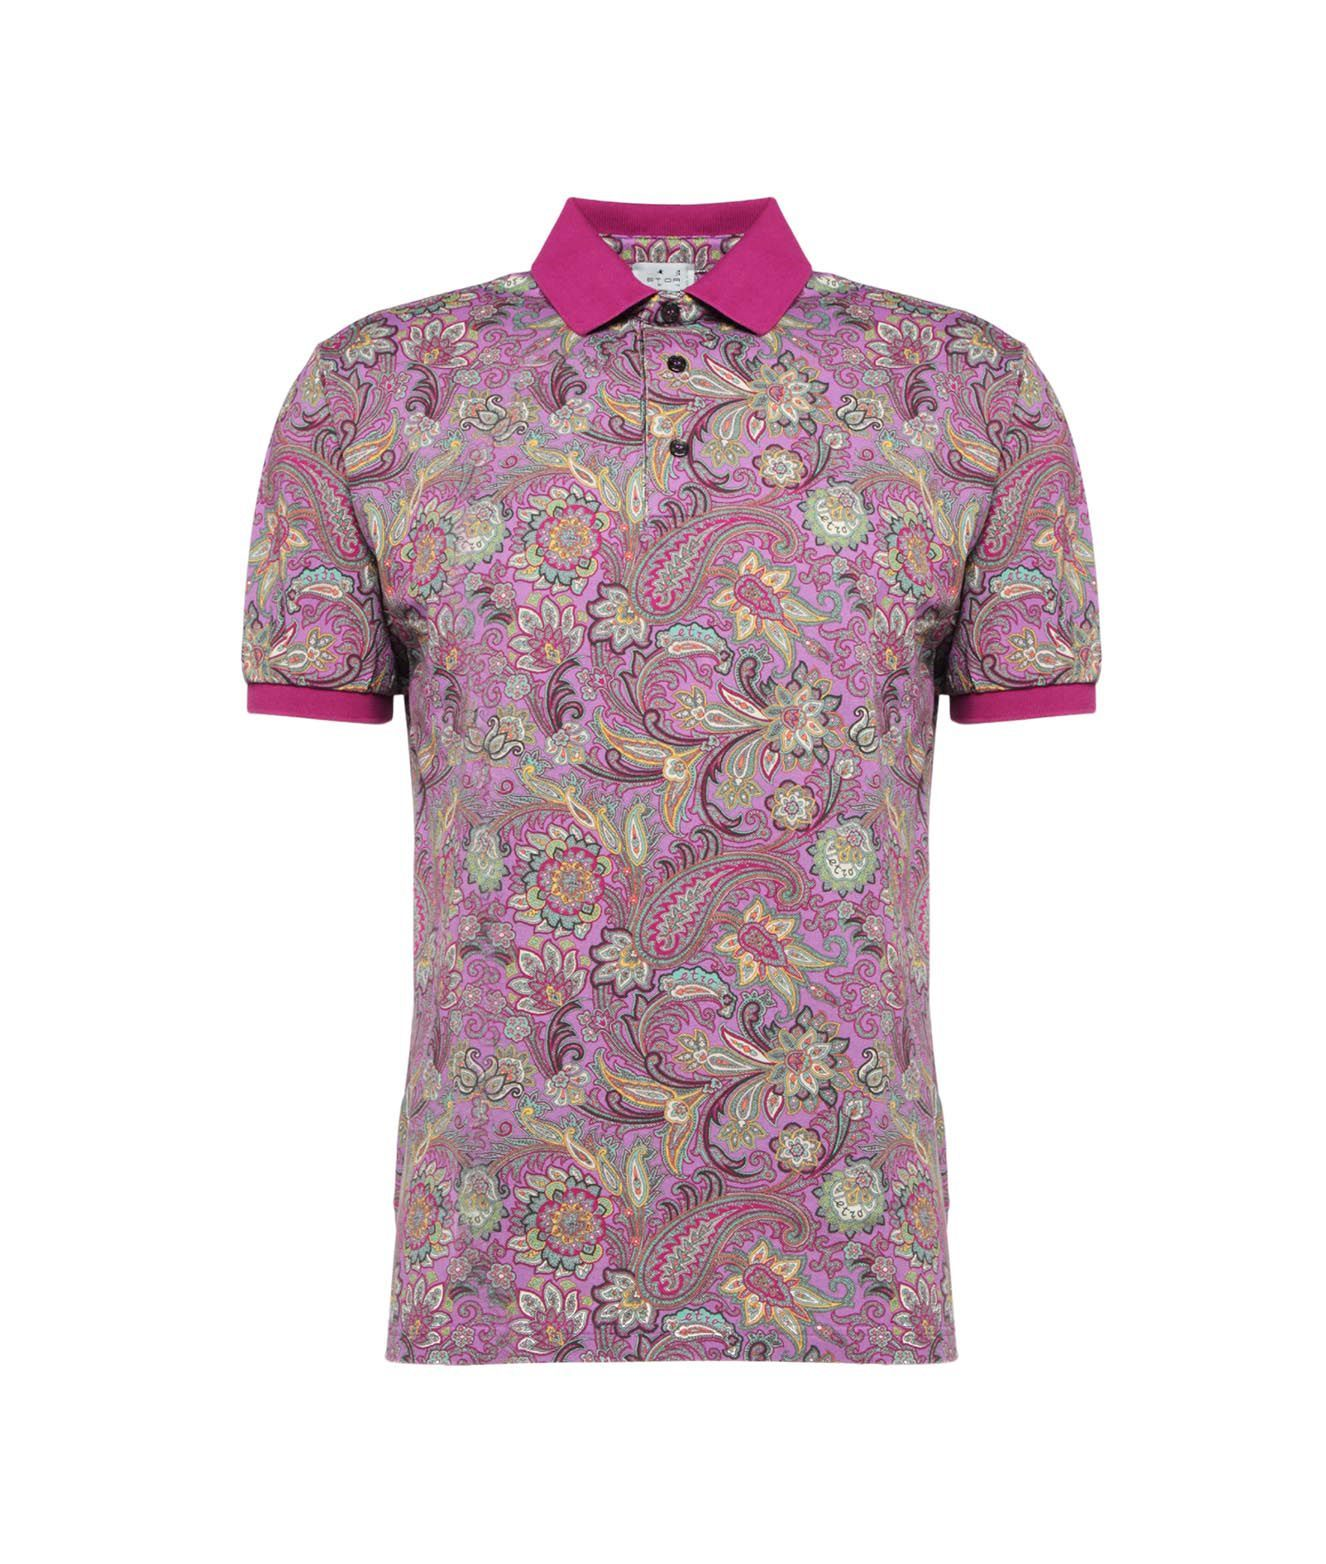 Etro Shirts ETRO MEN'S 1Y800408311650 PURPLE OTHER MATERIALS POLO SHIRT